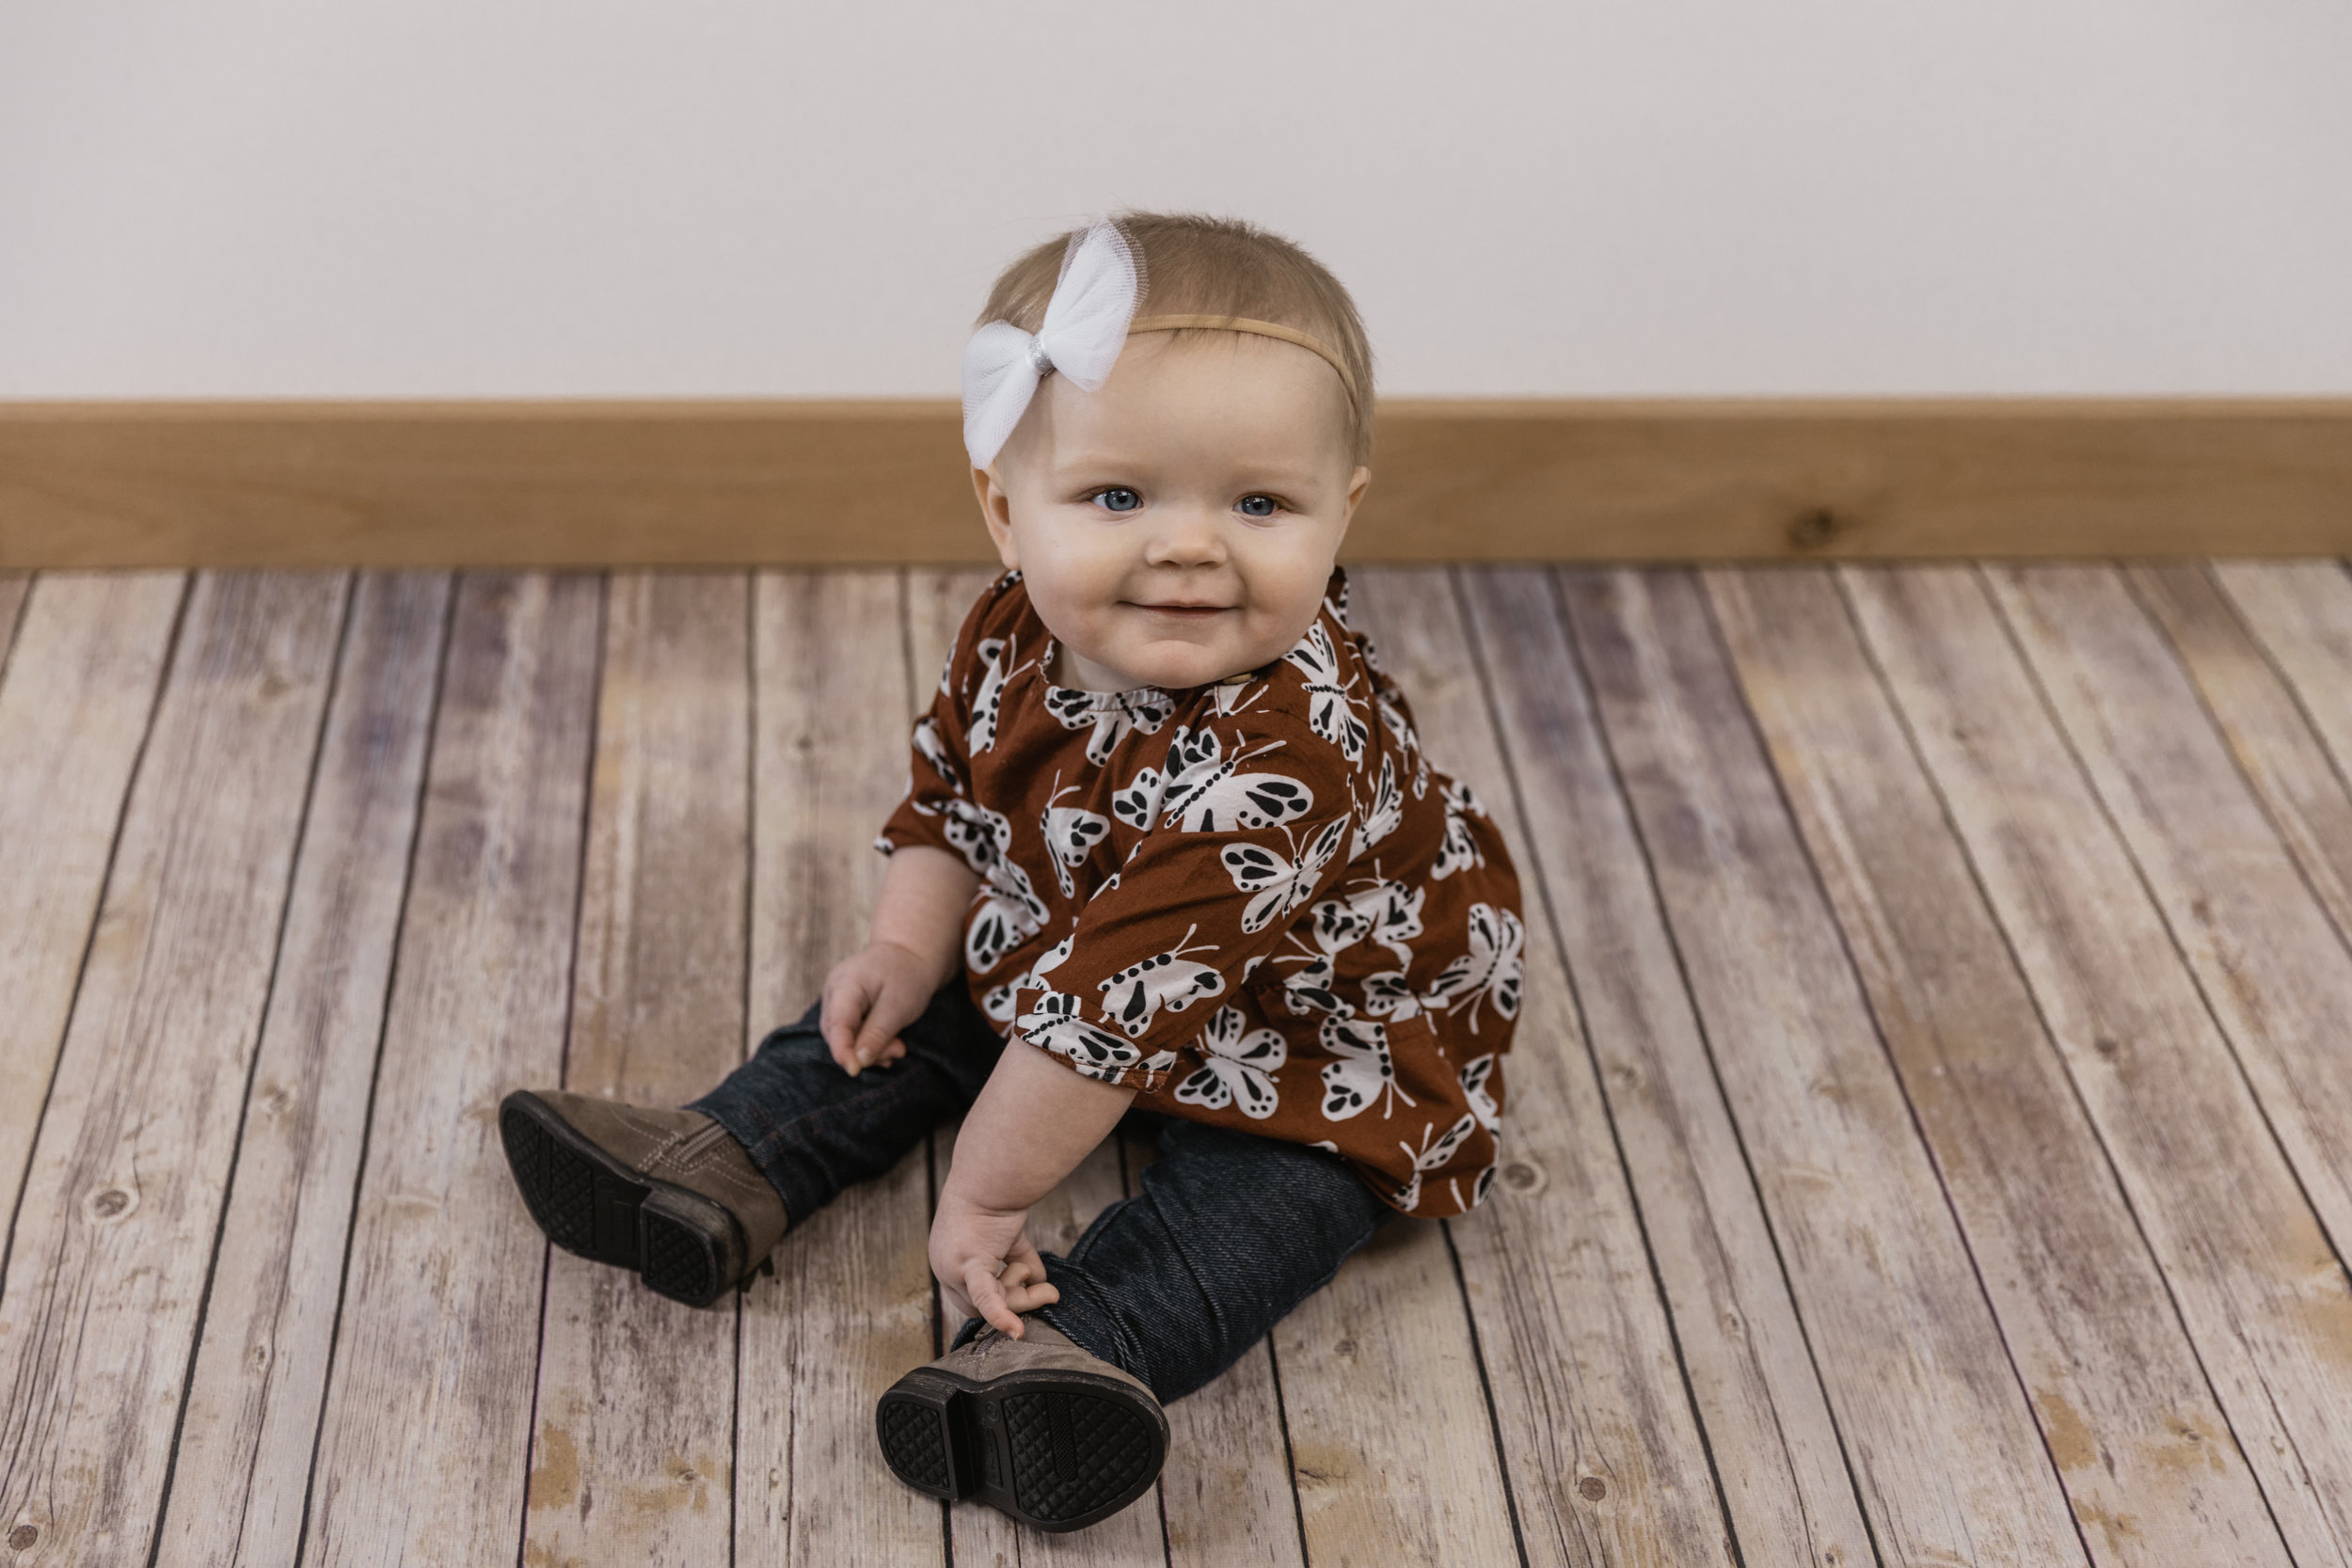 Kinley 6 Month Baby Pictures-10.jpg